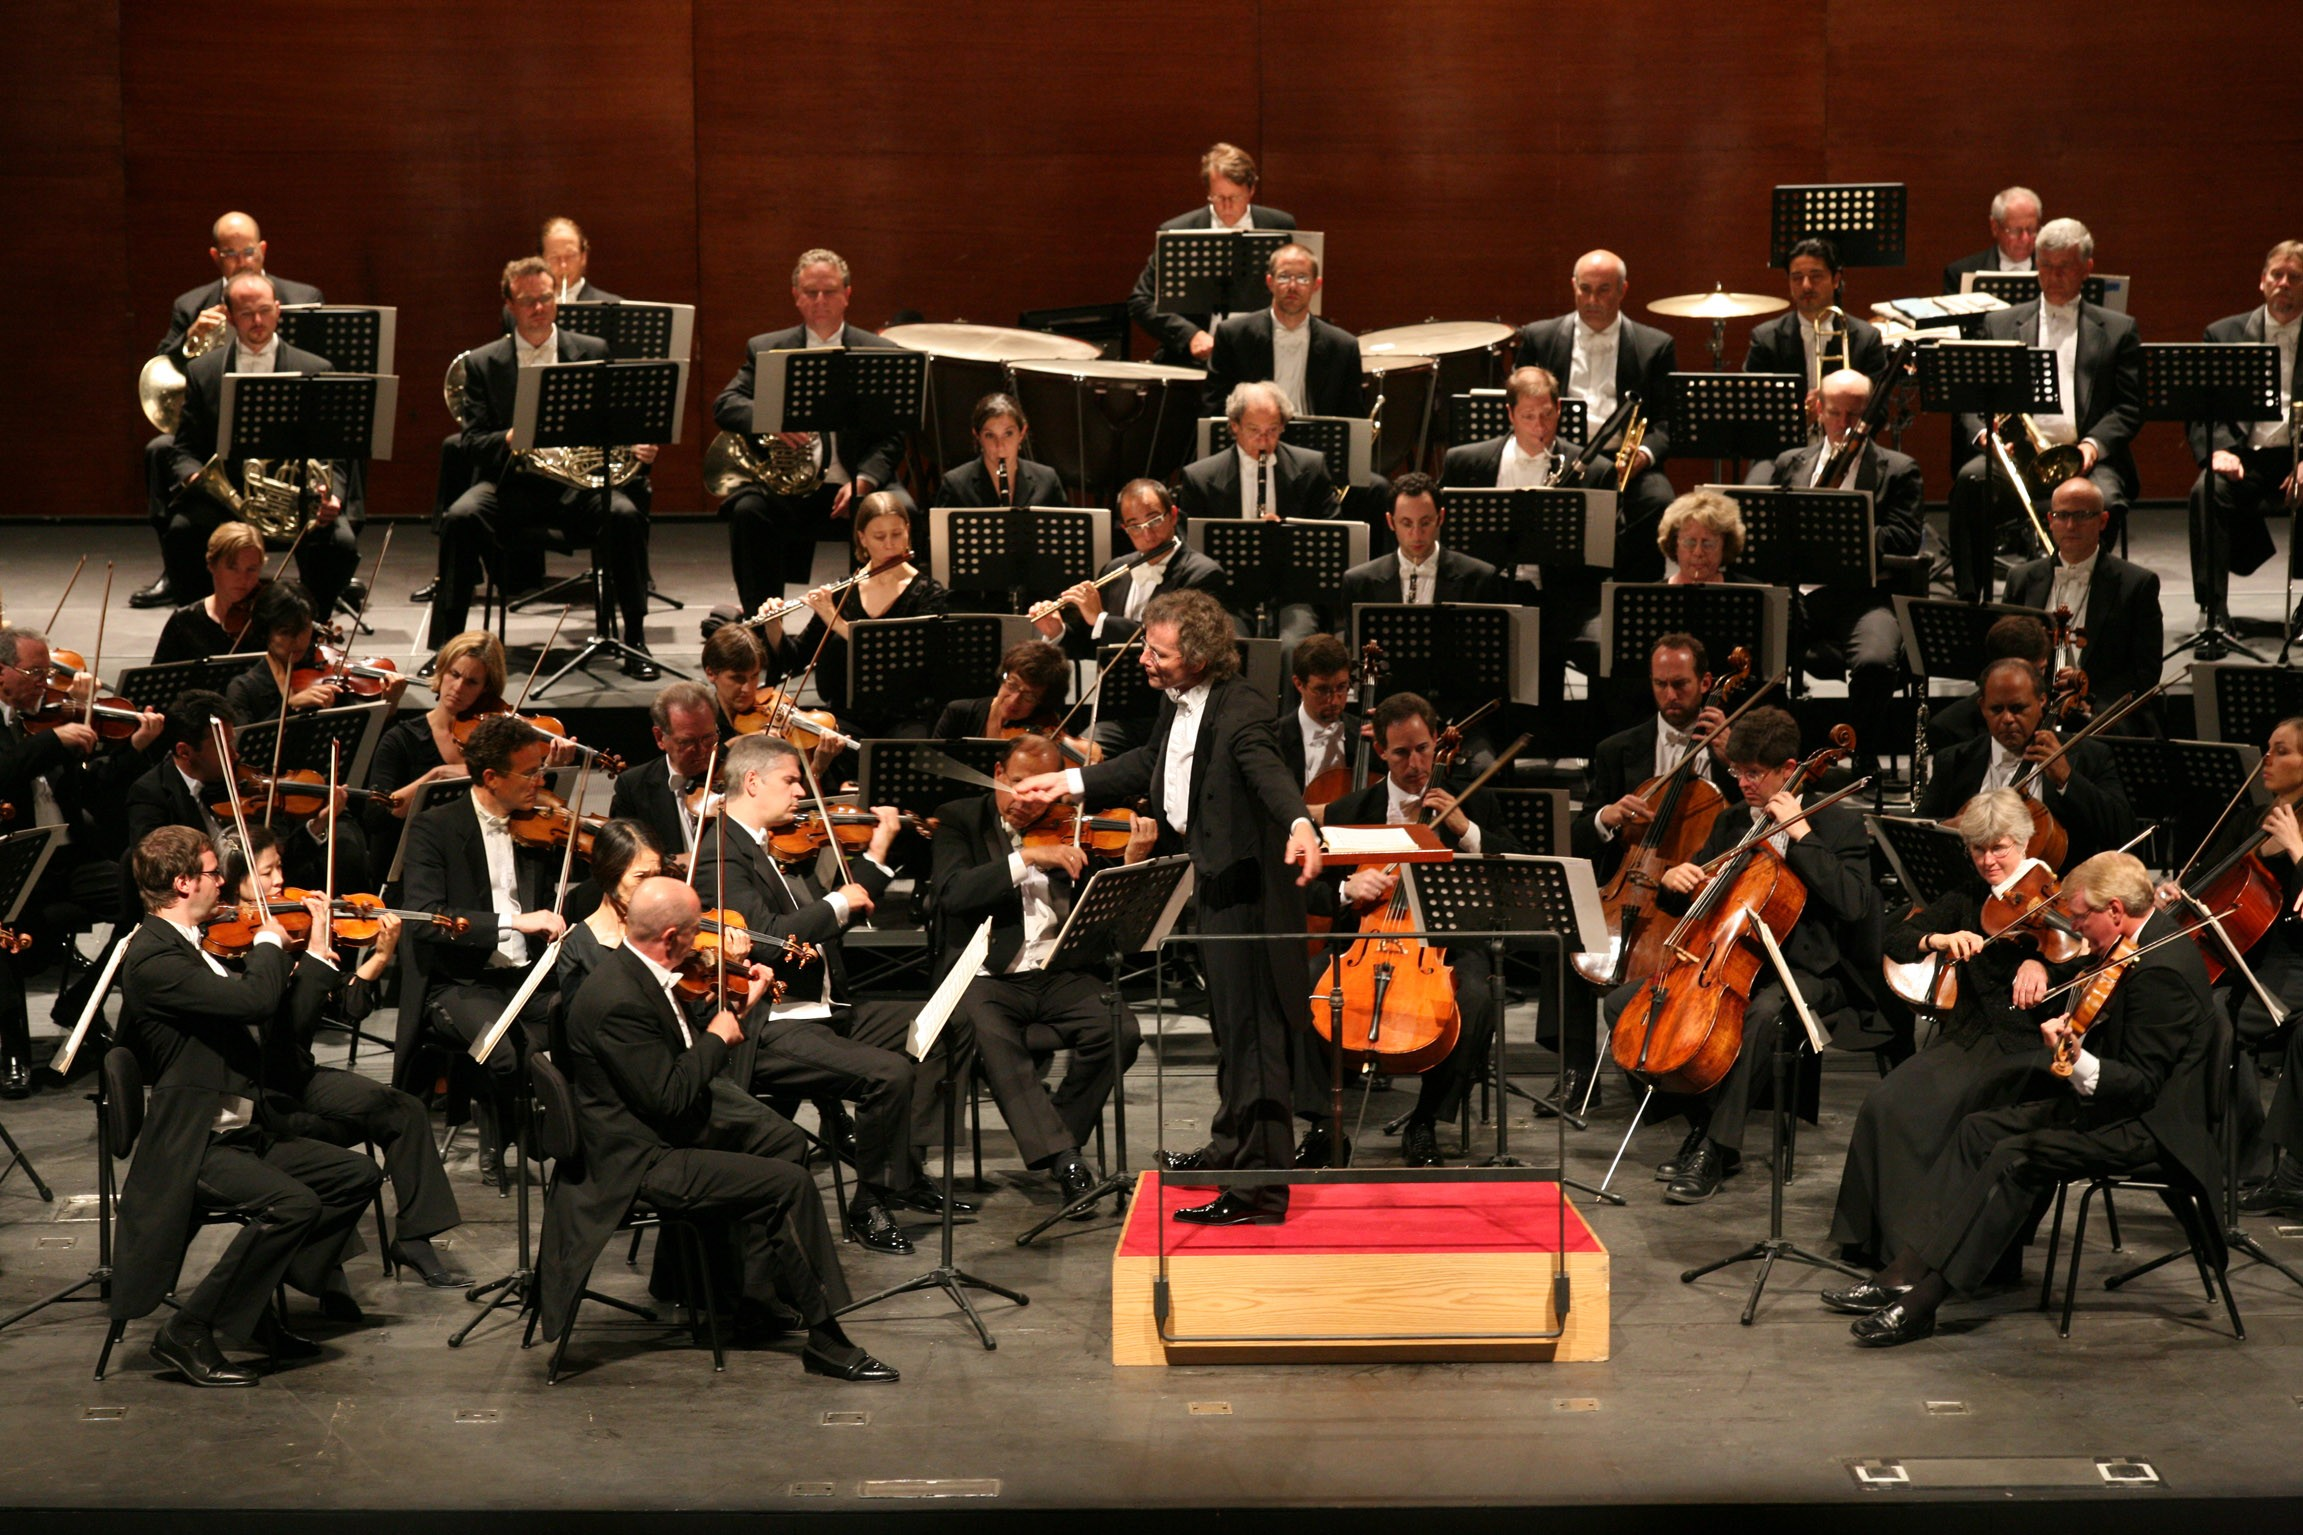 After 100 years, the Cleveland Orchestra Continues to Ignore